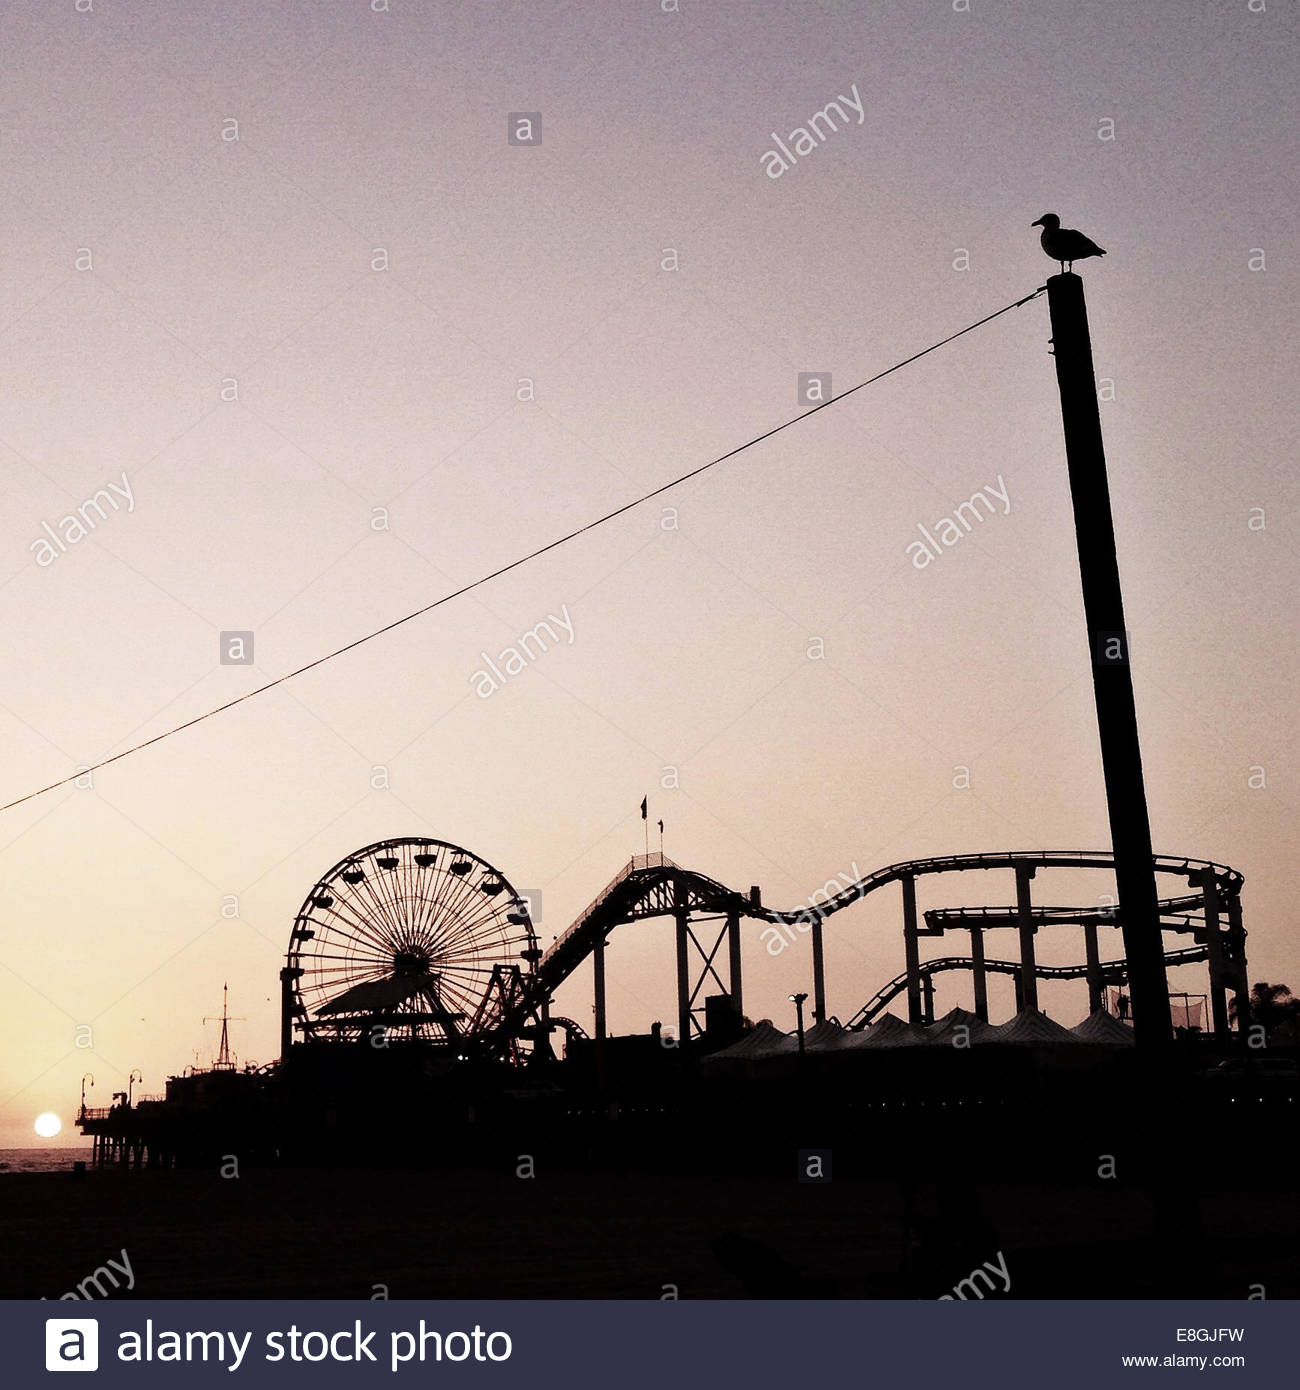 Fair ground at sunset - Stock Image